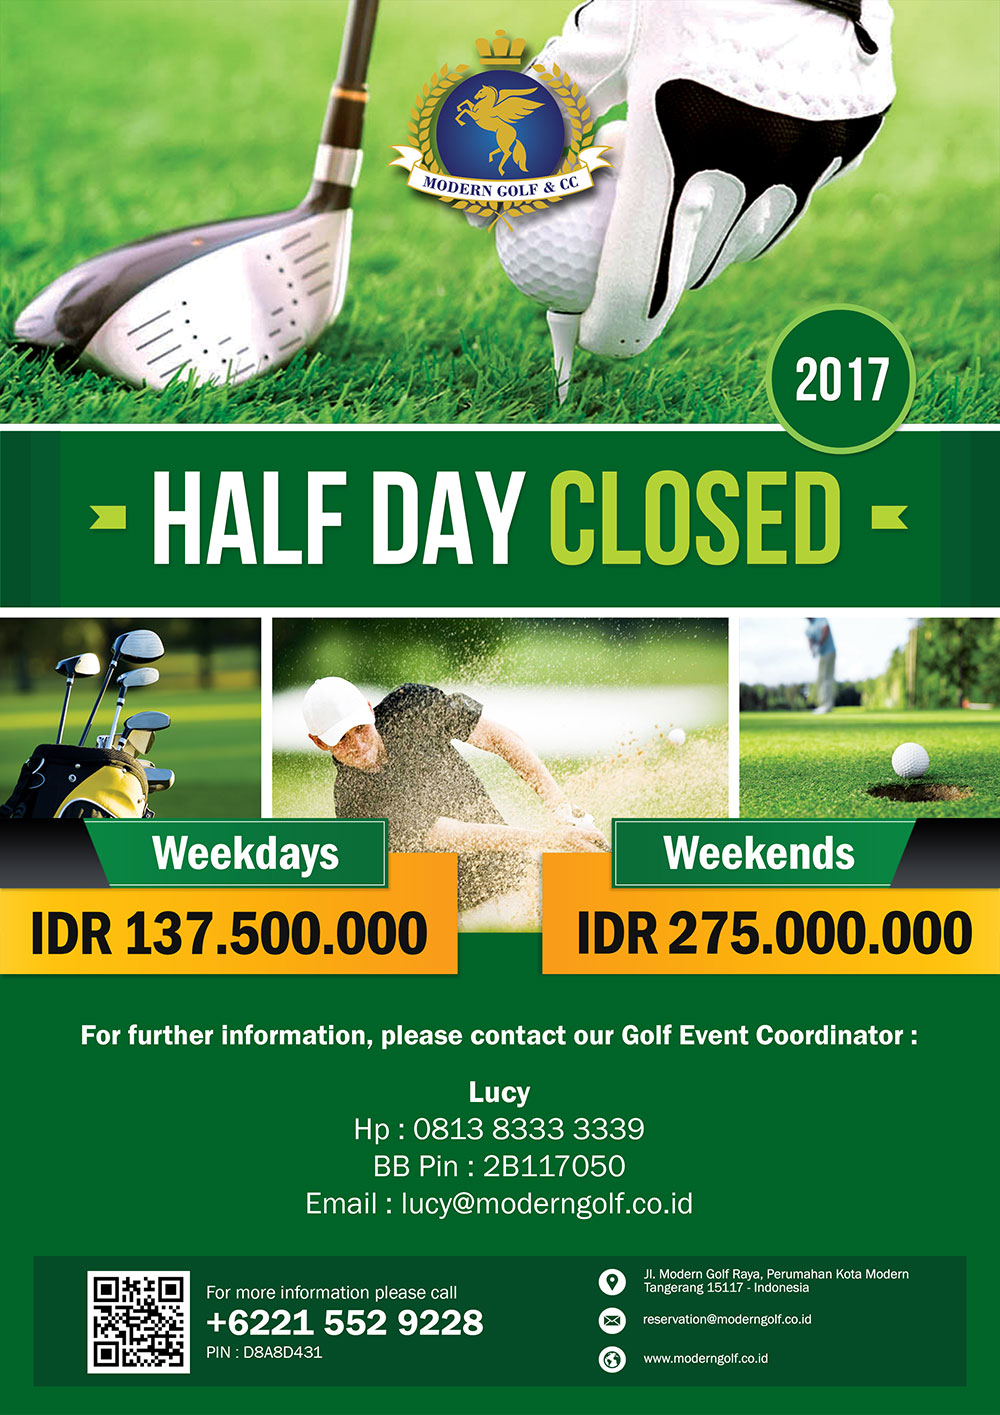 Half Day Closed 2017